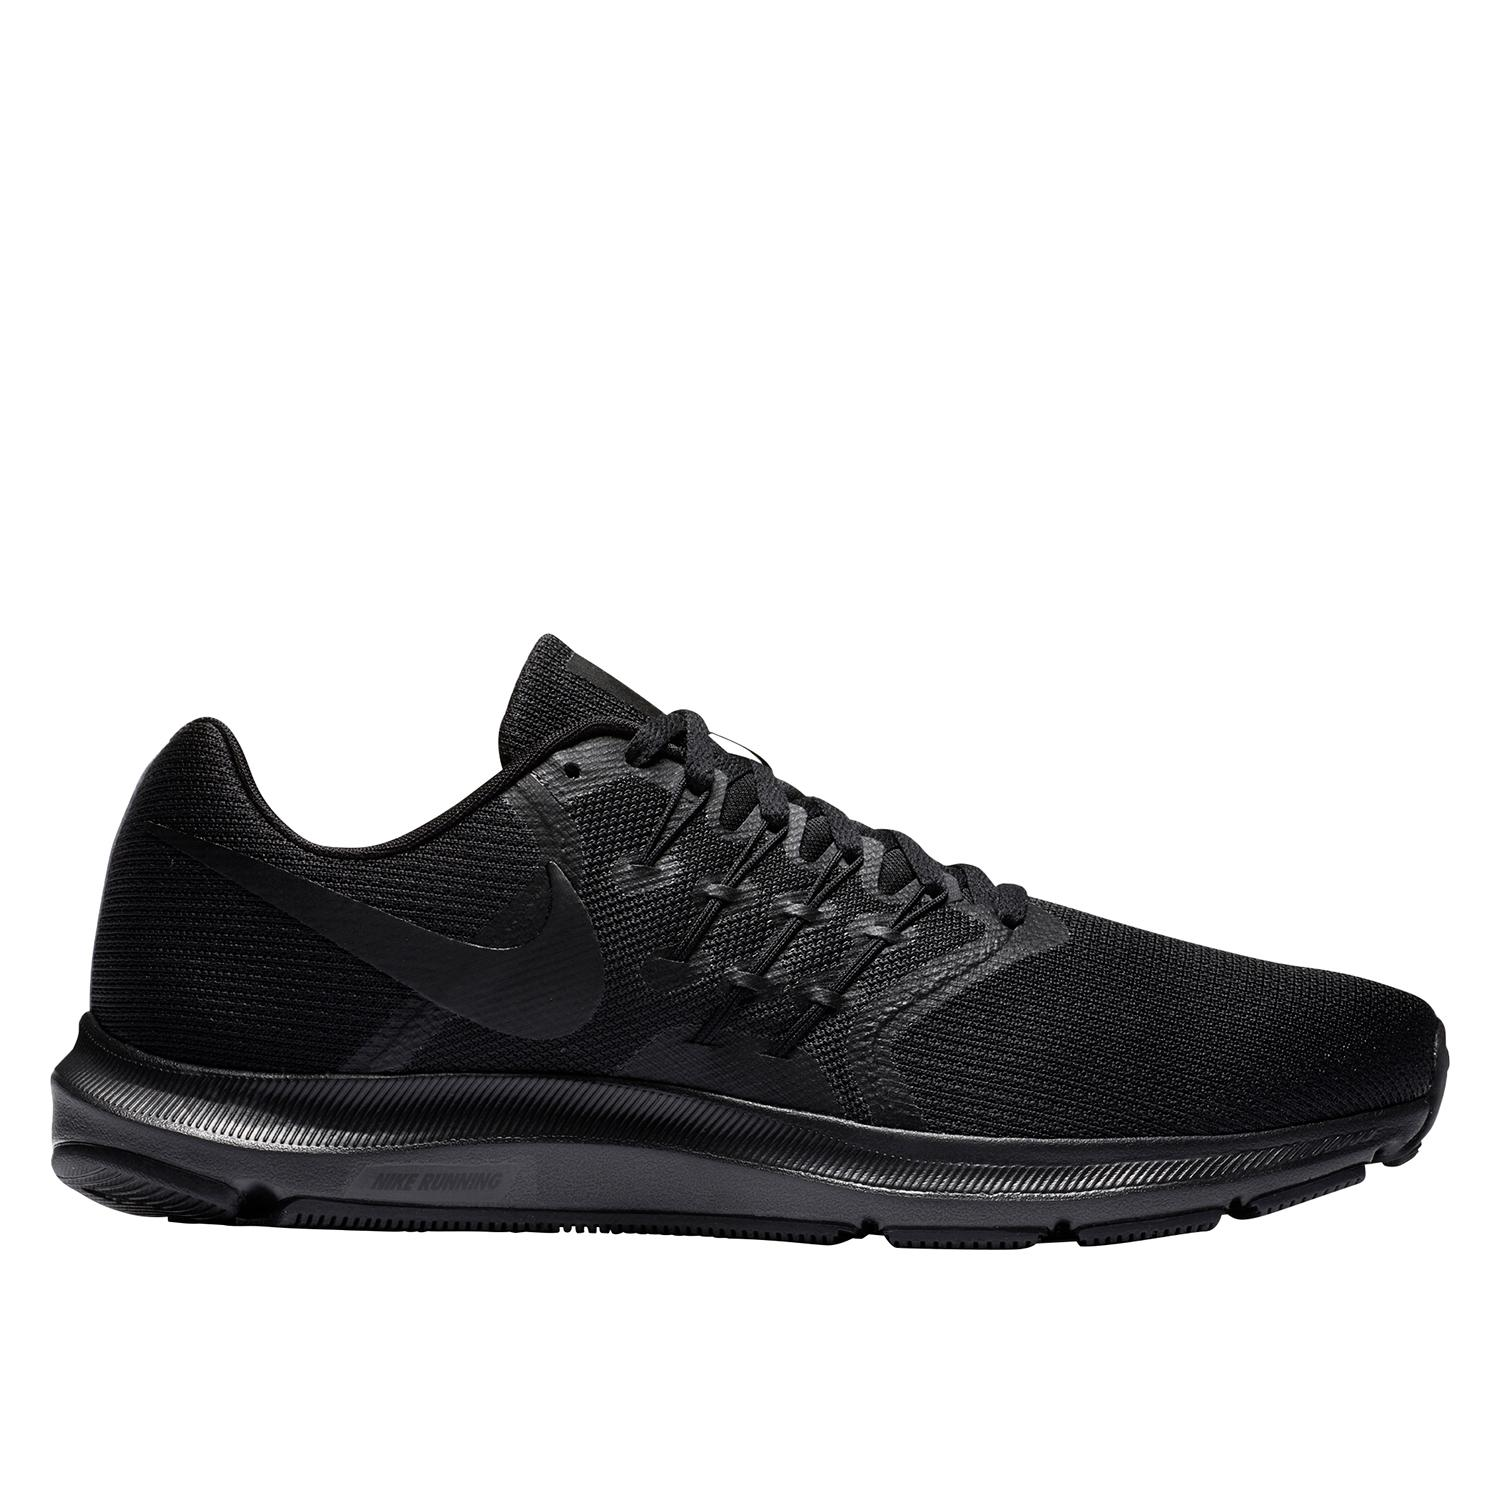 5f01eeb90384 ... website for a bunch of shoes on sale Nike Run Swift Mens Running Shoe  in Black ...